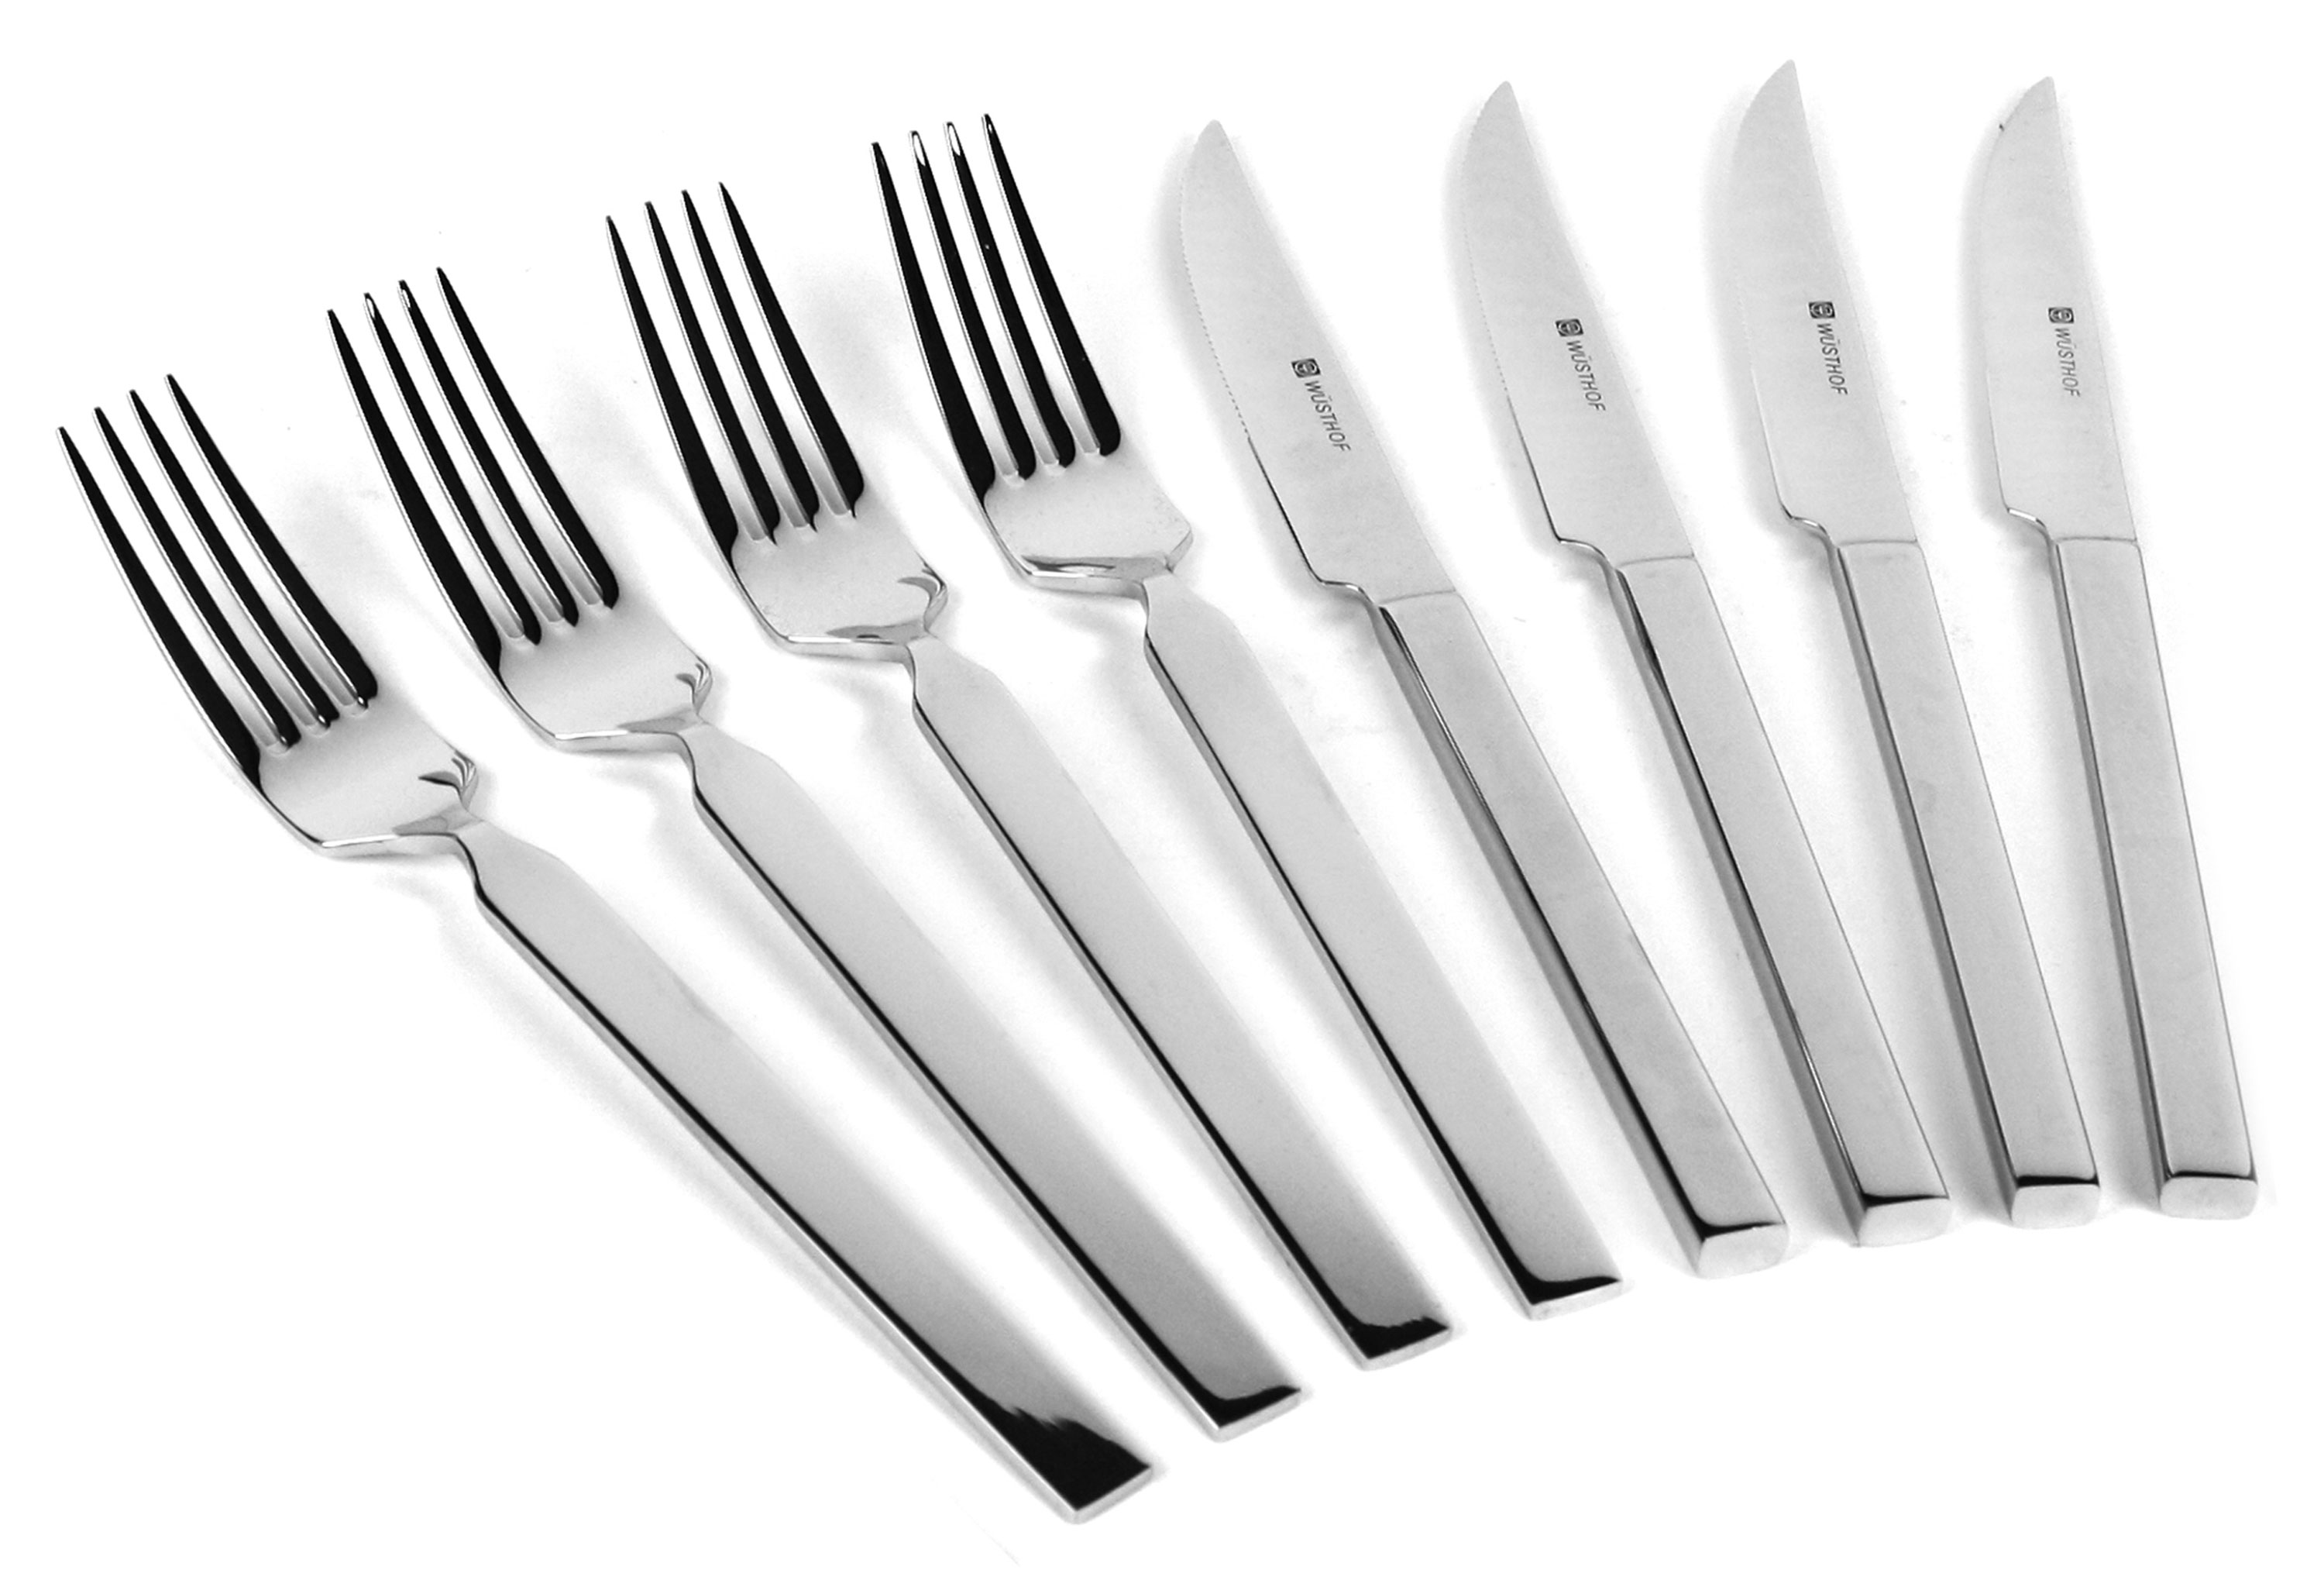 Wusthof stainless steel steak knife fork set 8 piece cutlery and more - Knives and forks sets ...